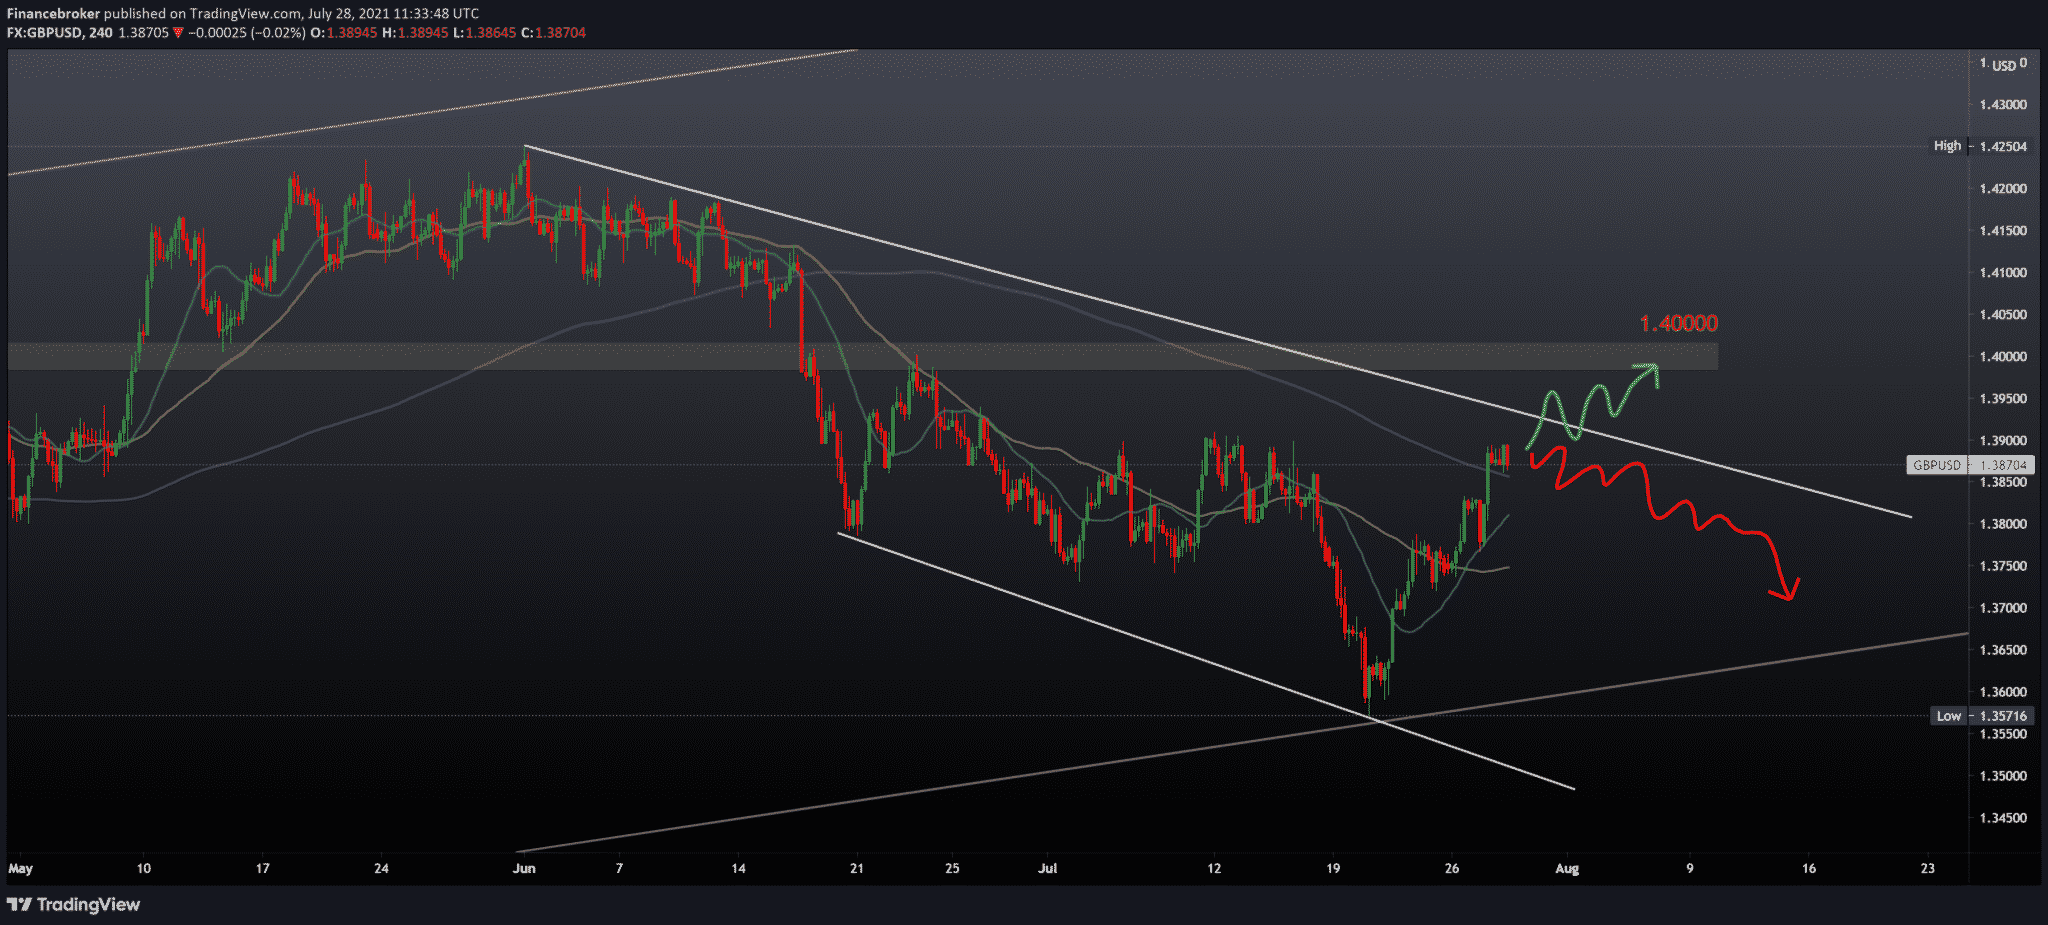 GBPUSD Forecast: Waiting for the FOMC meeting